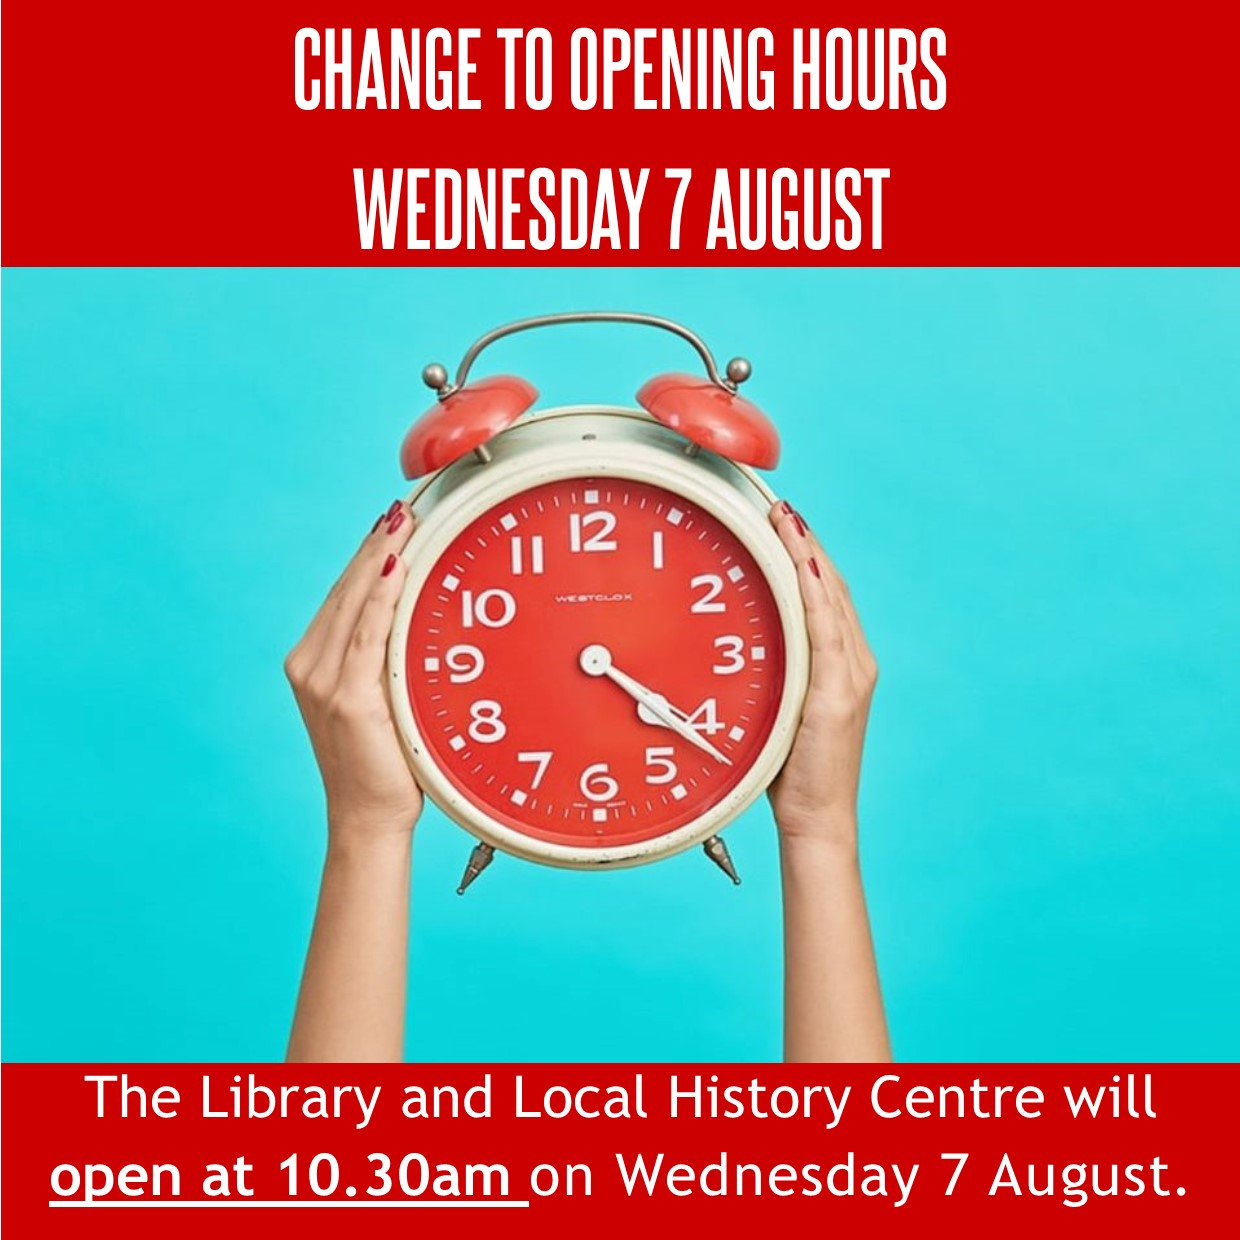 Temporary Change to Library Opening Hours